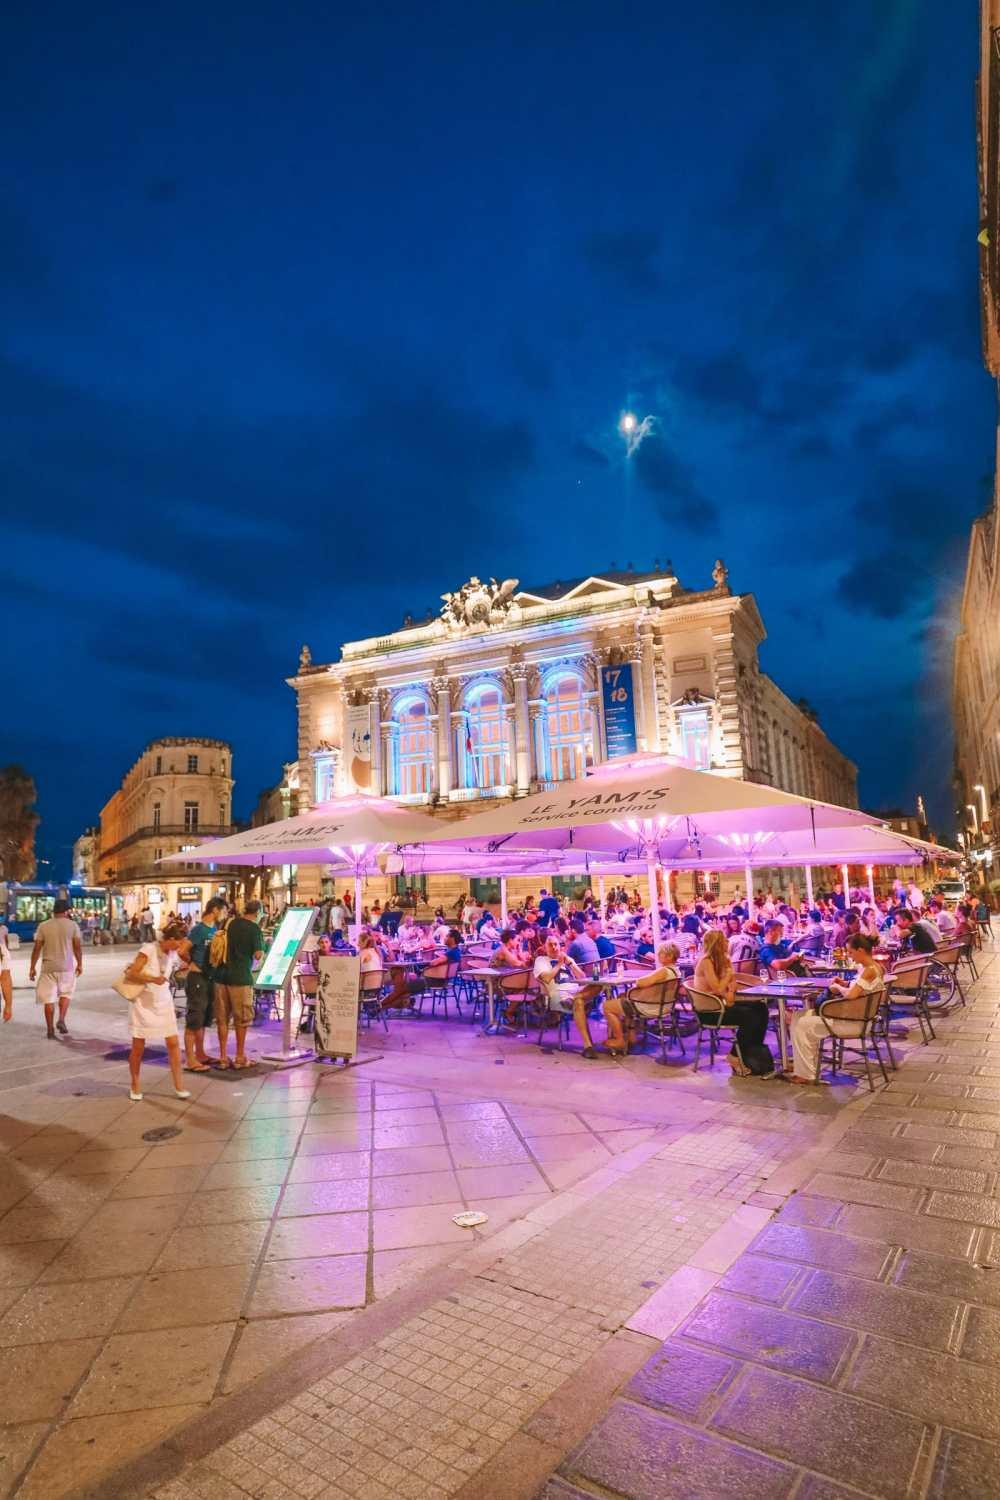 The Absolutely Beautiful City Of Montpellier In The South Of France (56)